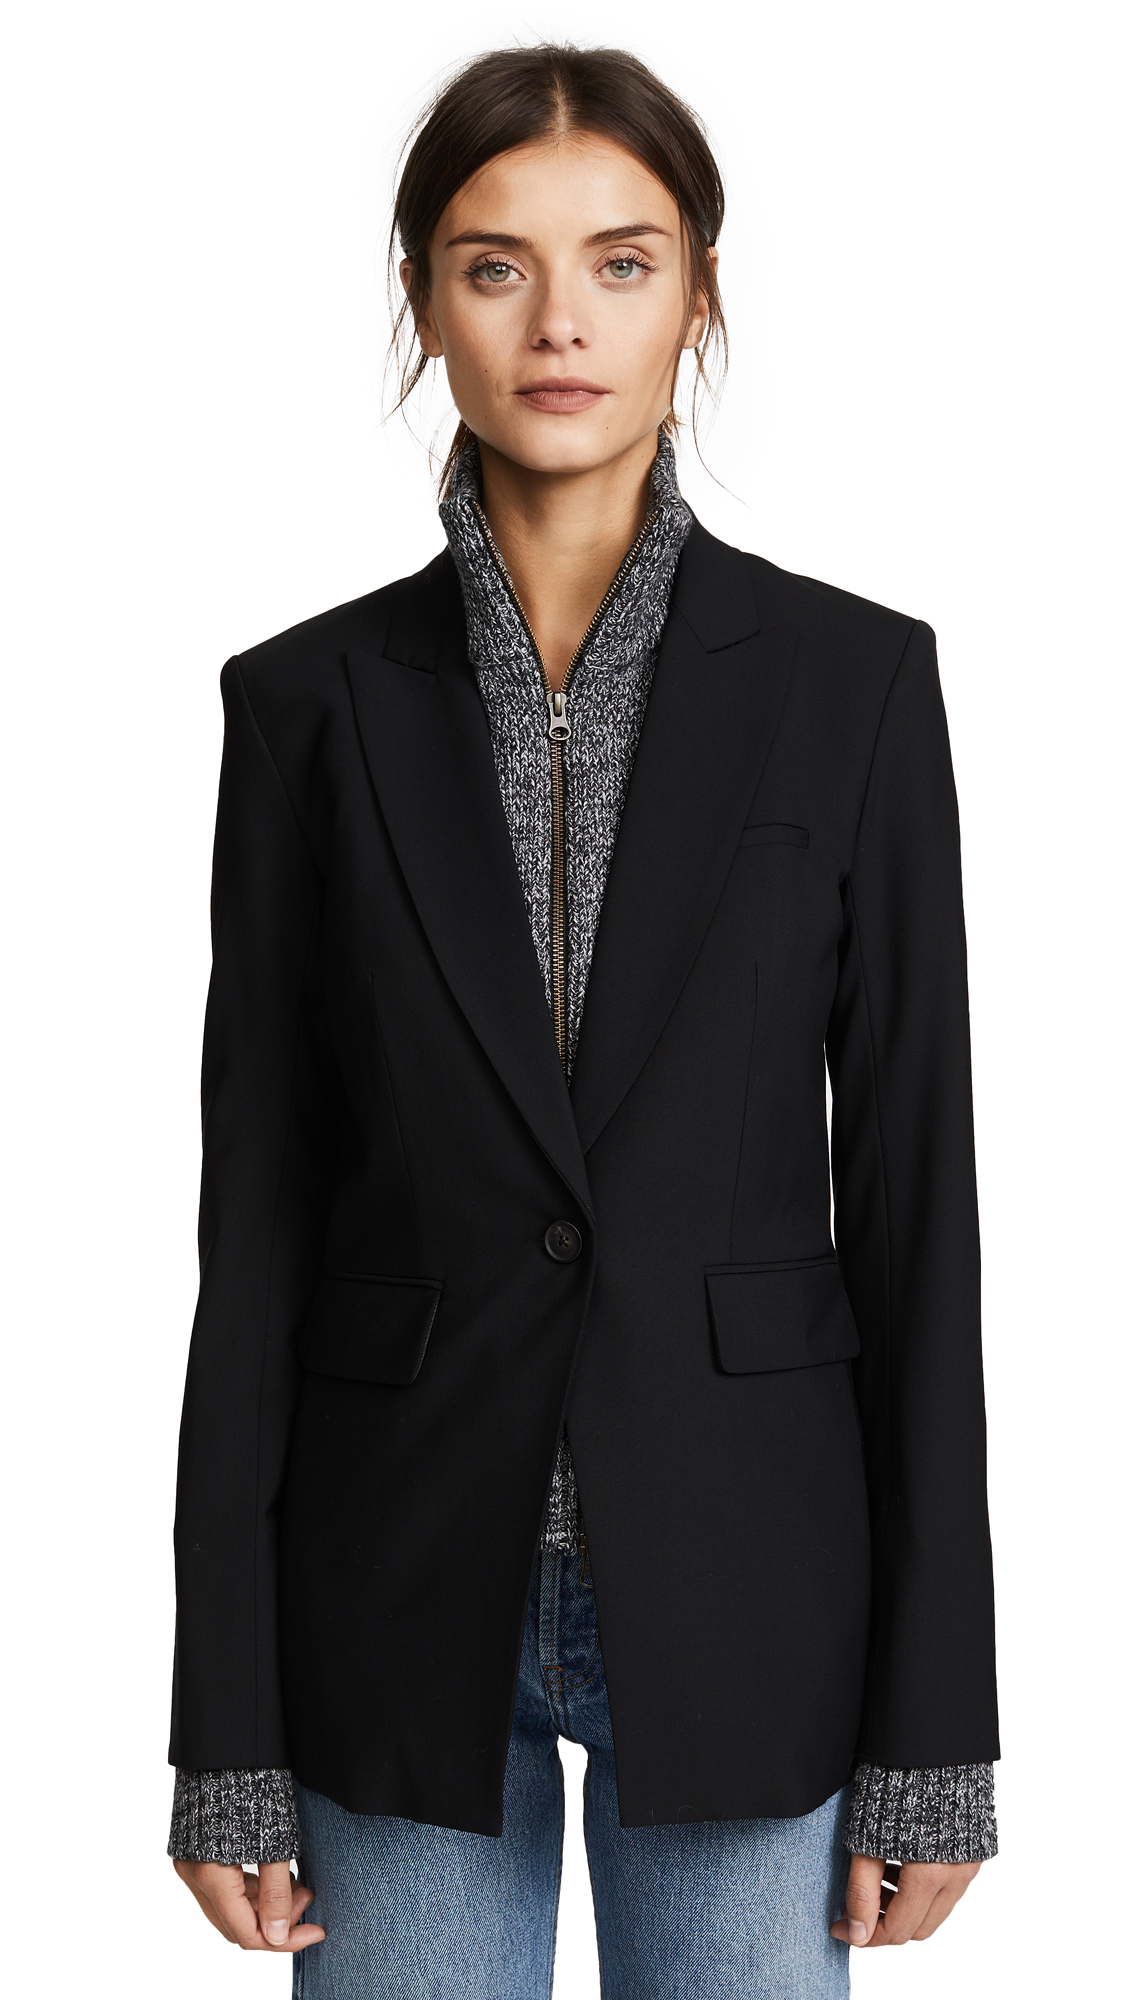 Veronica Beard Long & Lean Jacket with Melange Uptown Dickey - Black/Black/White